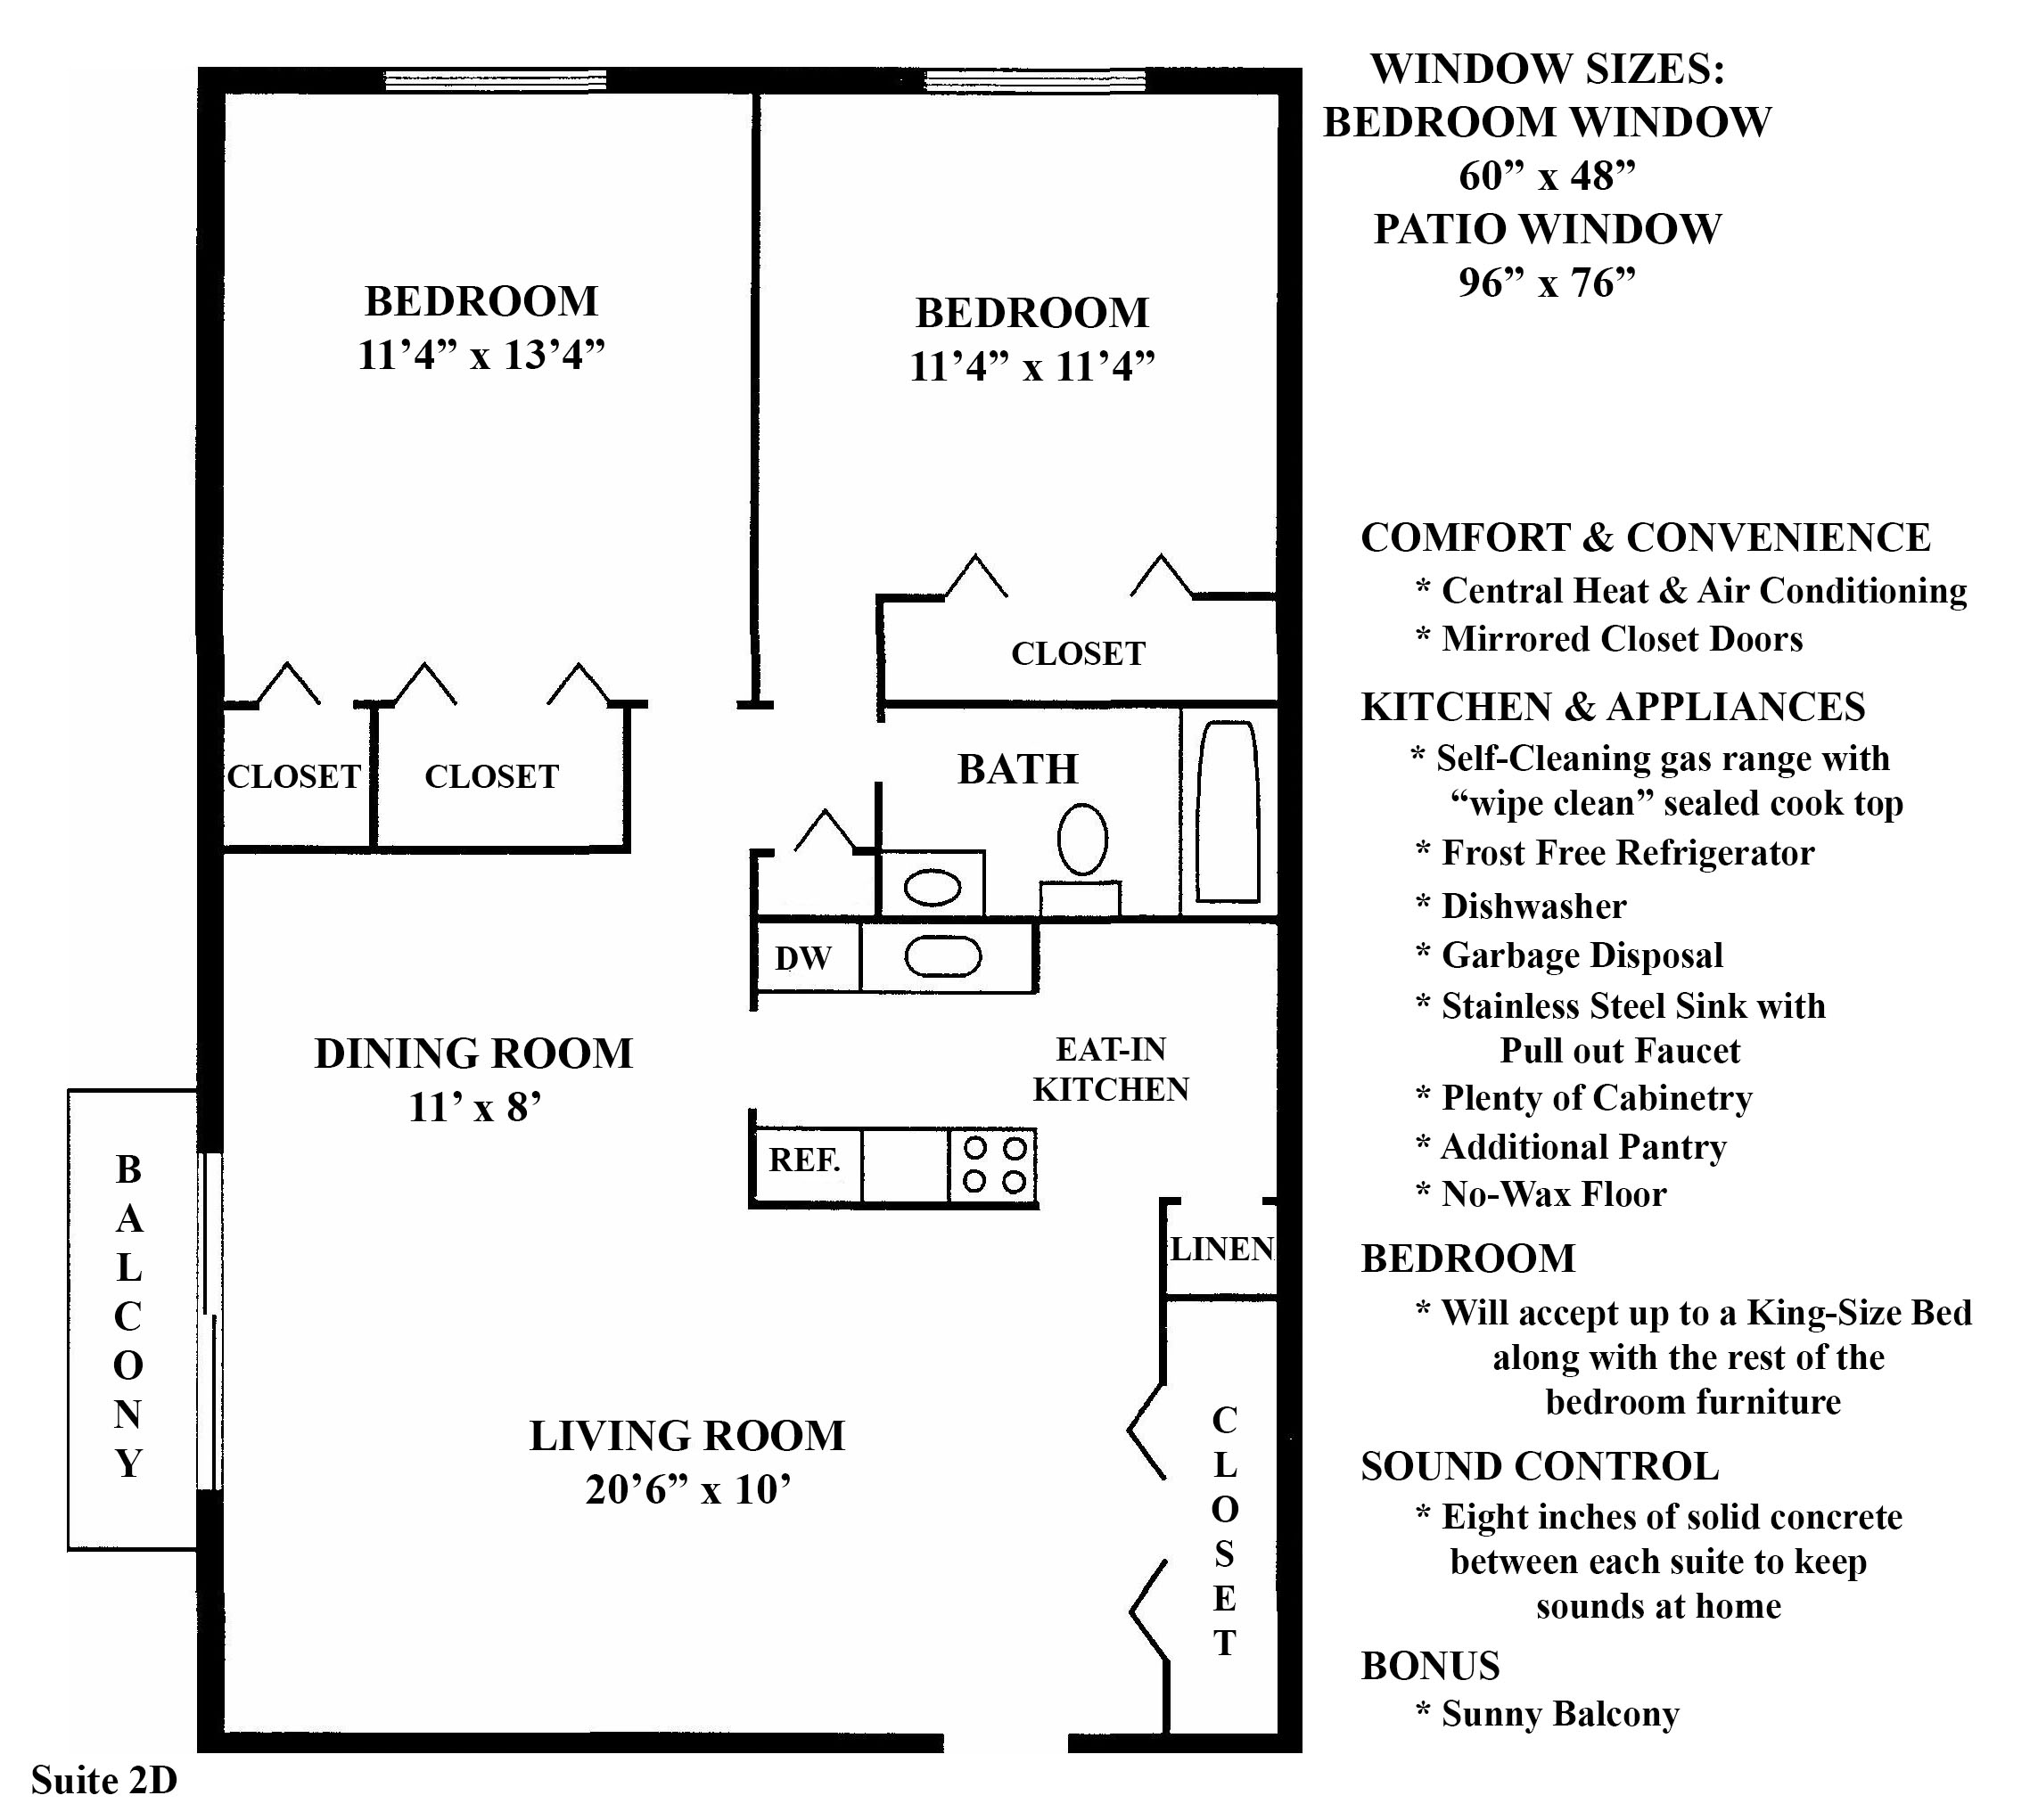 Floorplan - 2D (2 Bedroom 1 Bath) image